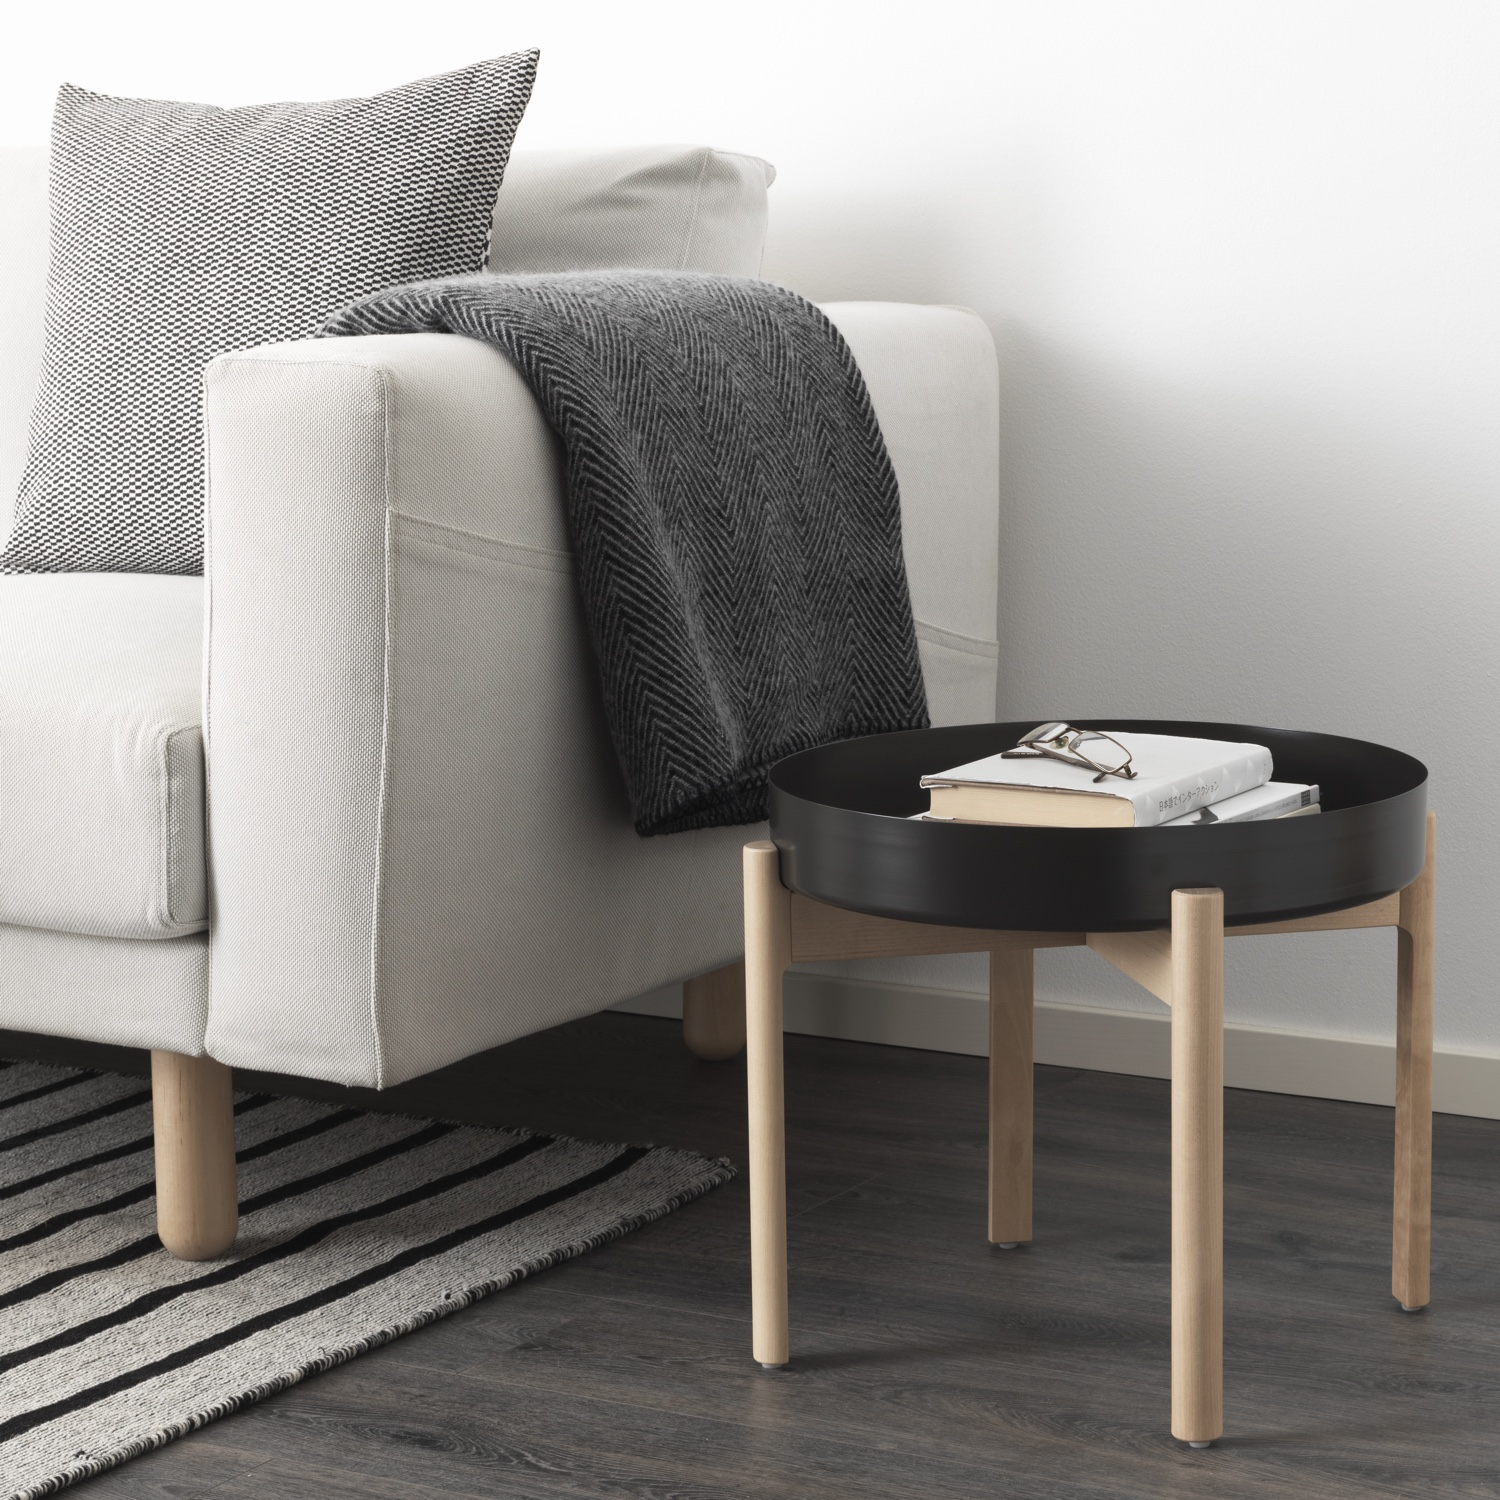 Ikea Bettsofa Ypperlig 10 Standouts From The Ikea X Hay Ypperlig Collection